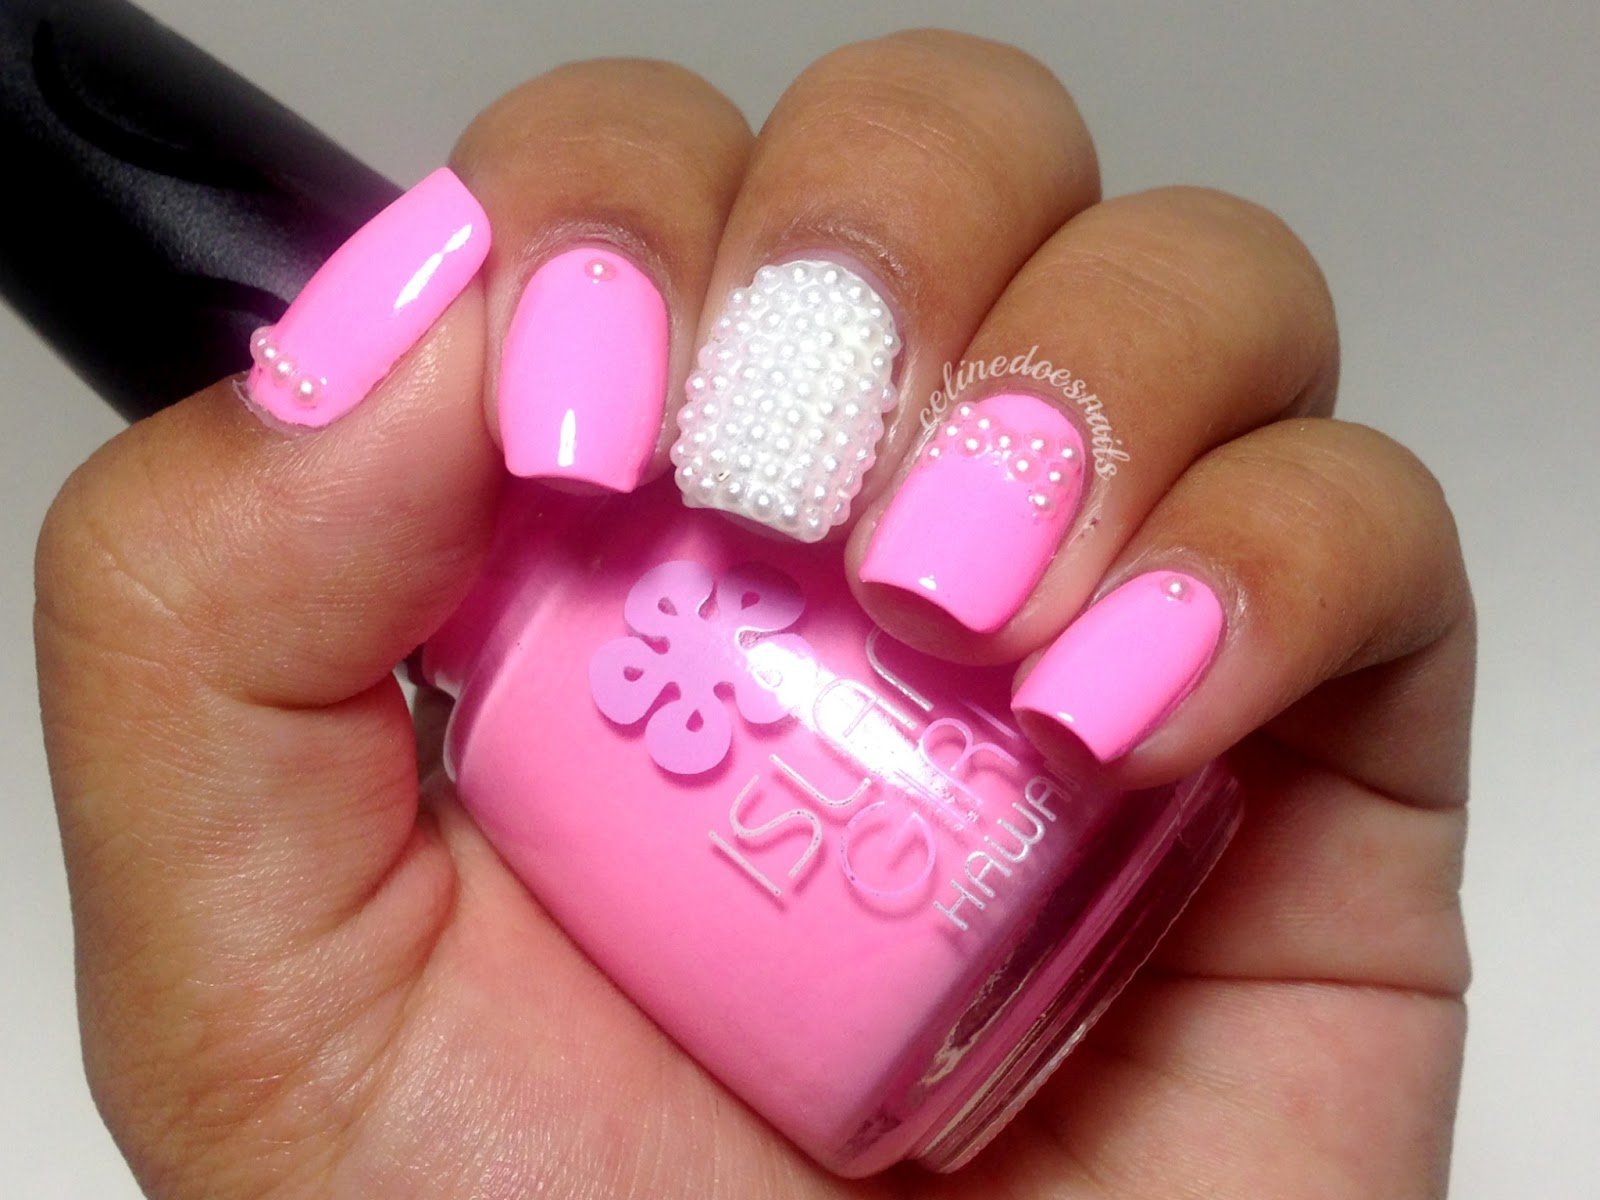 Nails By Celine: Born Pretty Store - Pearl Review